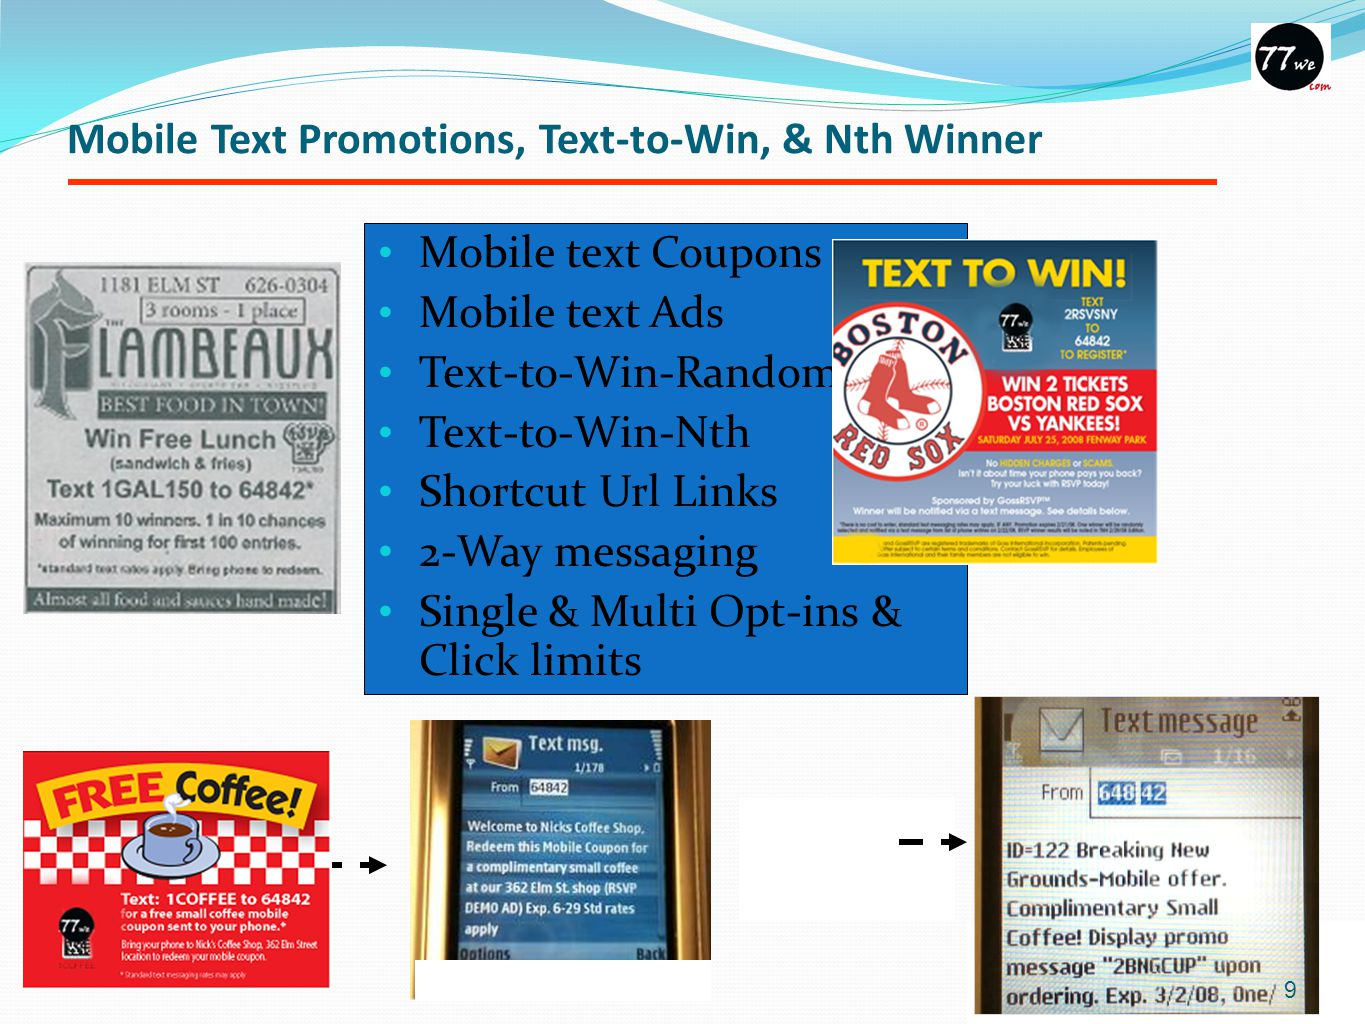 Mobile Text Promotions, Text-to-Win, & Nth Winner Mobile text Coupons Mobile text Ads Text-to-Win-Random Text-to-Win-Nth Shortcut Url Links 2-Way messaging Single & Multi Opt-ins & Click limits Or Unique ID, Single Opt-in with Exp date Multi-opt-in with Exp date 9